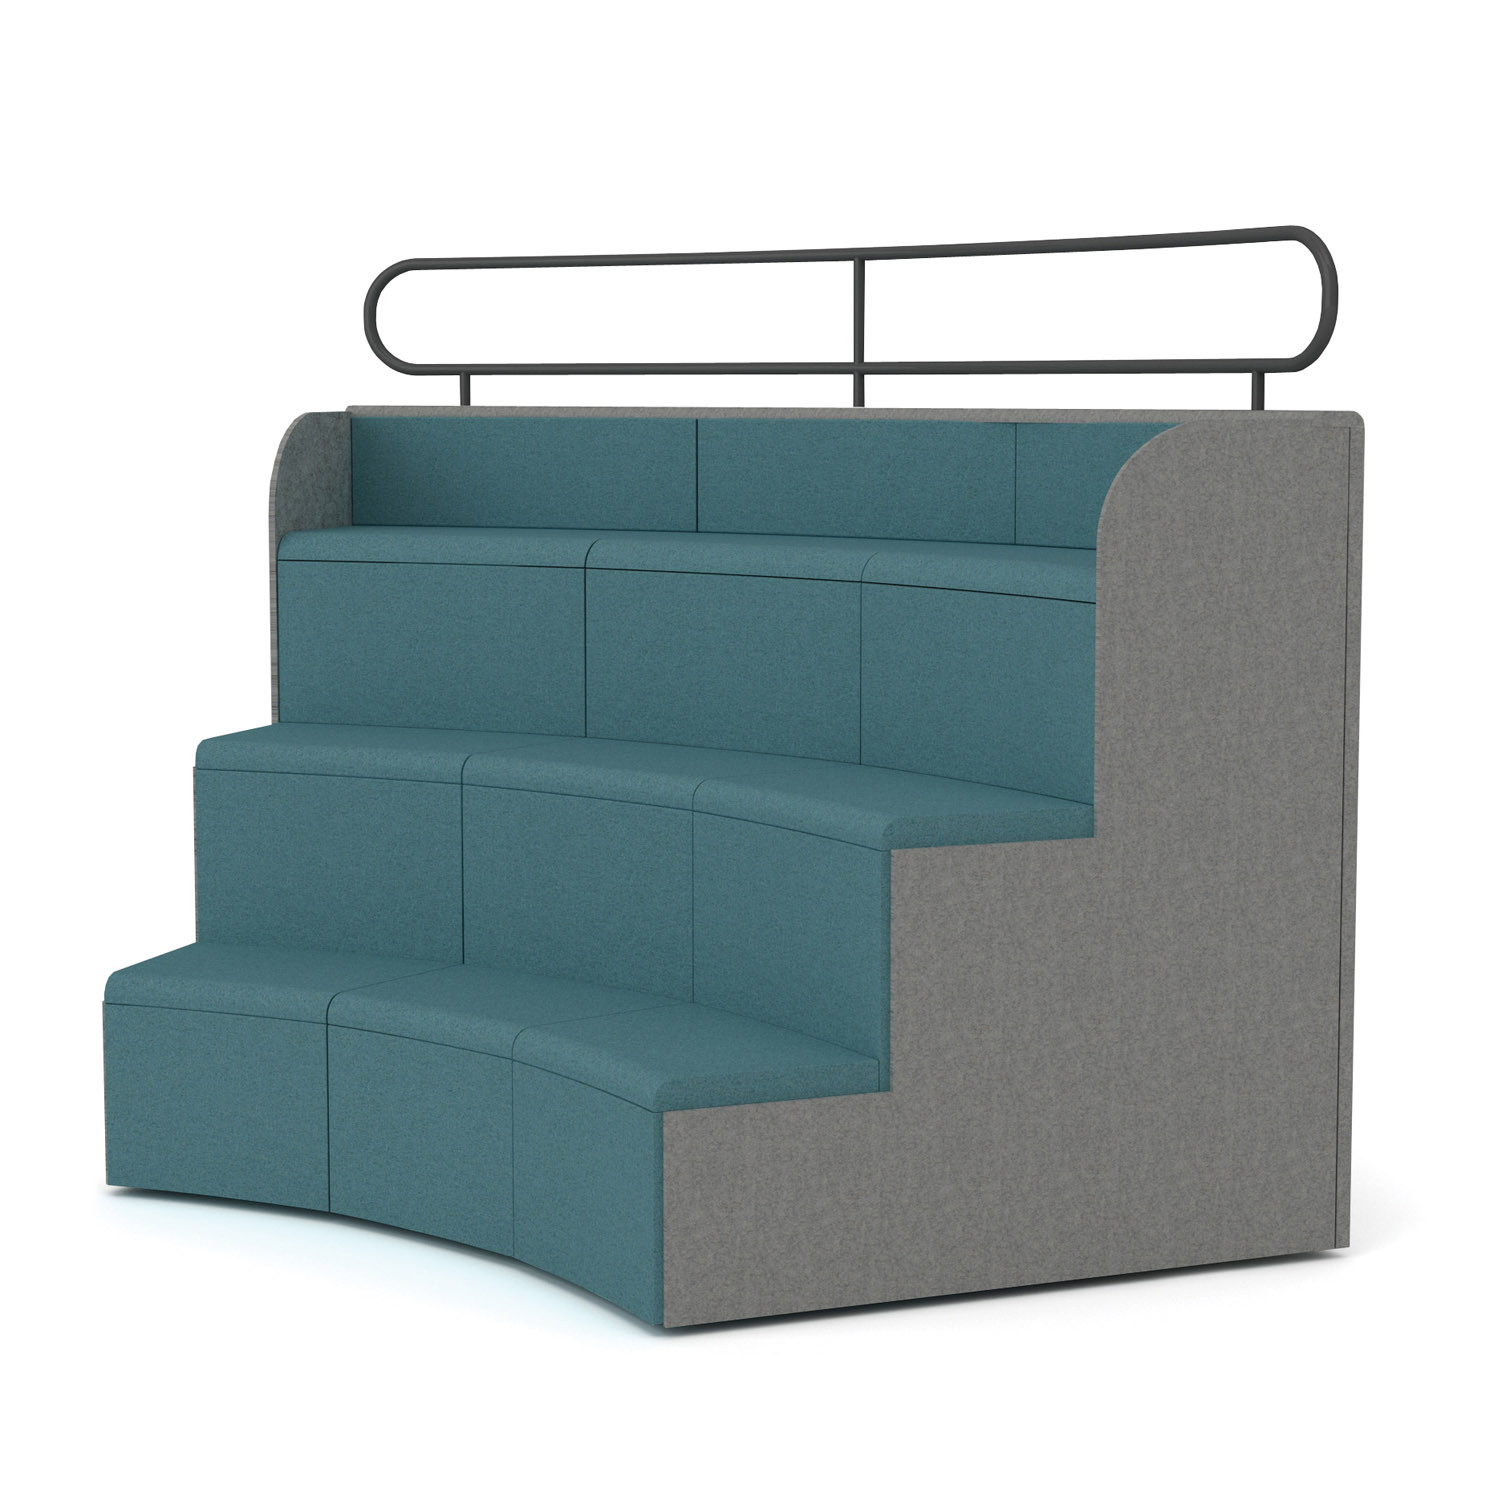 Steps Curved Modular Seating SSE2